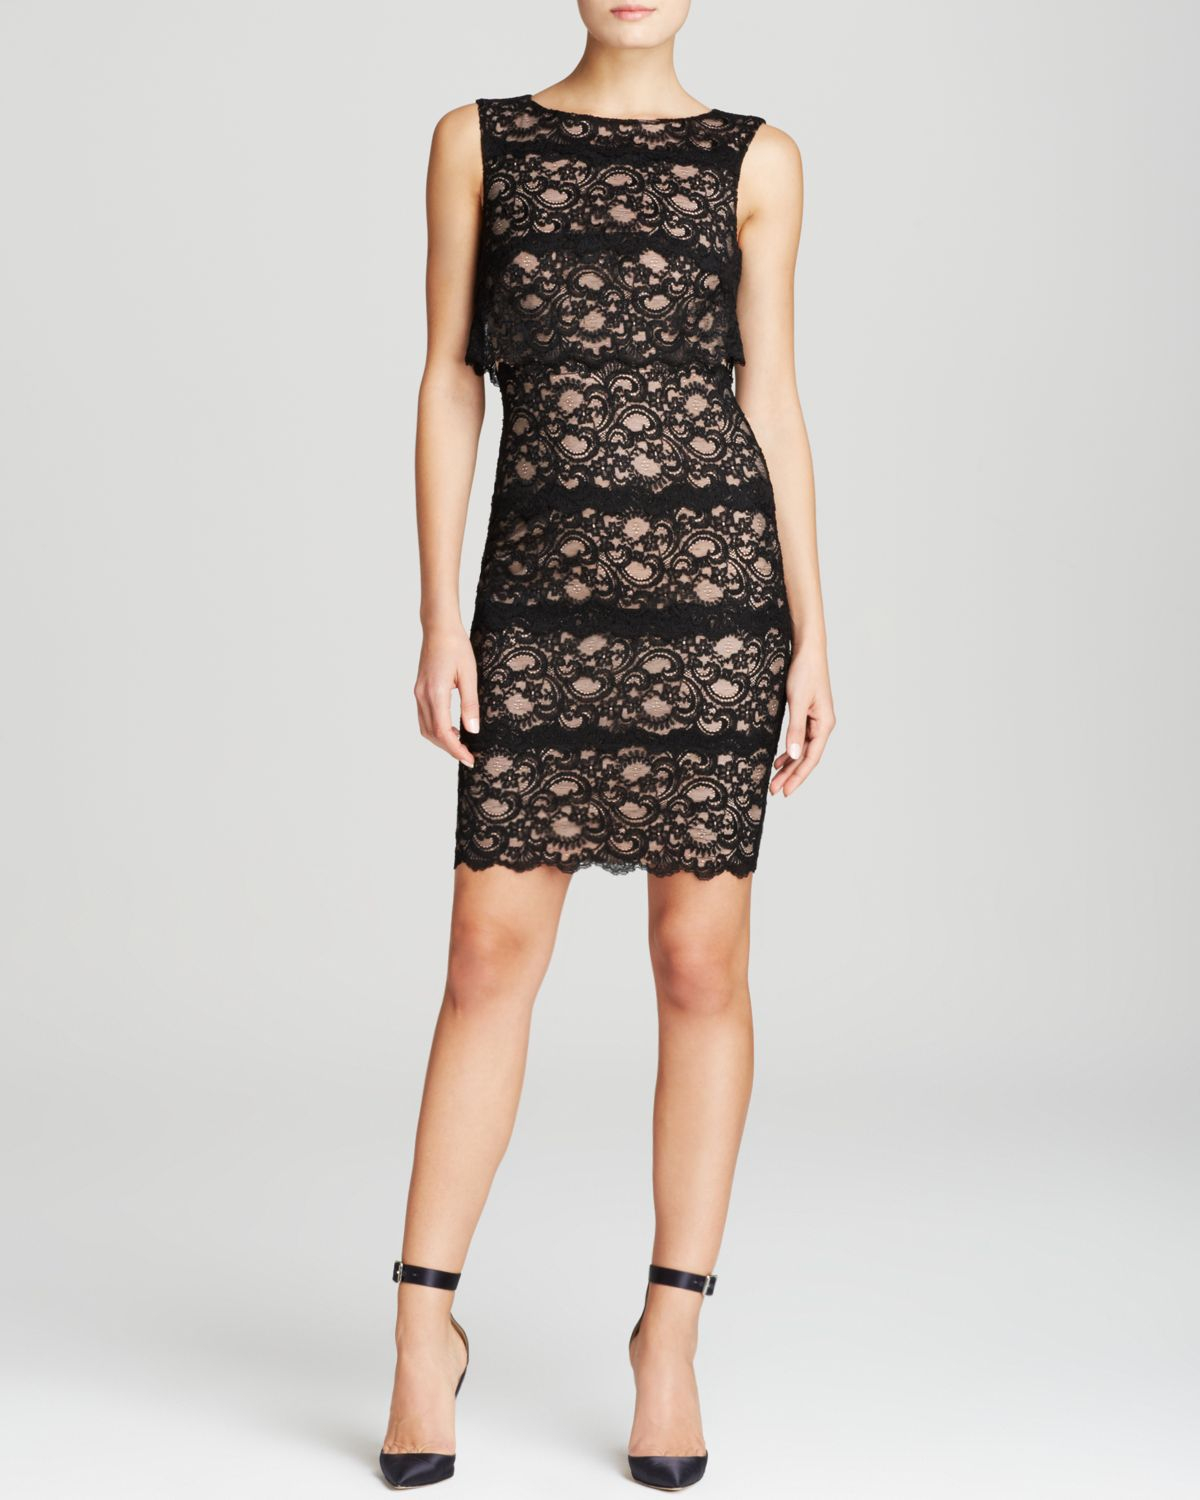 Lyst  Nicole Miller Dress  Sleeveless Stretch Lace in Black